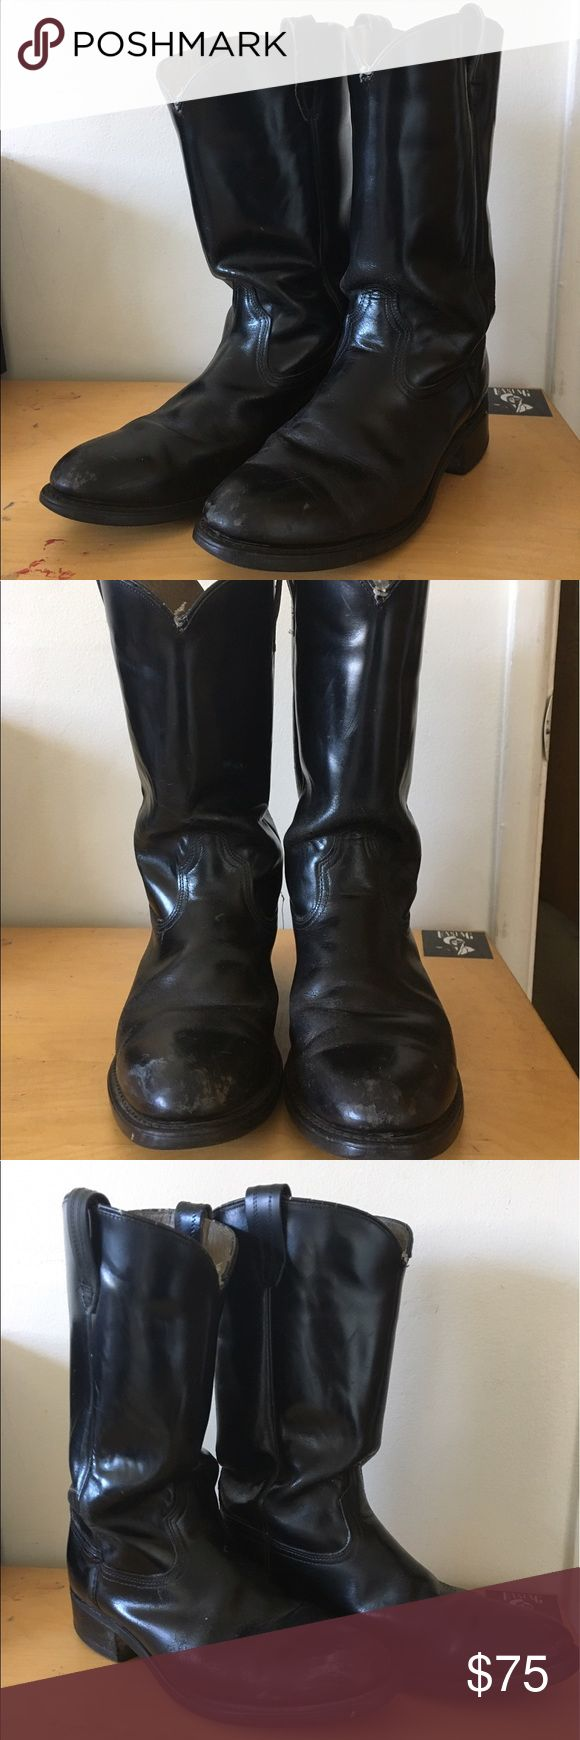 Vintage Dress Cowboy Boots - Black Black Vintage Dress Cowboy Boots! Recently had the straps redone and sewing a tightened up at the shop. There is some minor wear on some of the surfaces but are still in great wearable condition. Shoes Cowboy & Western Boots